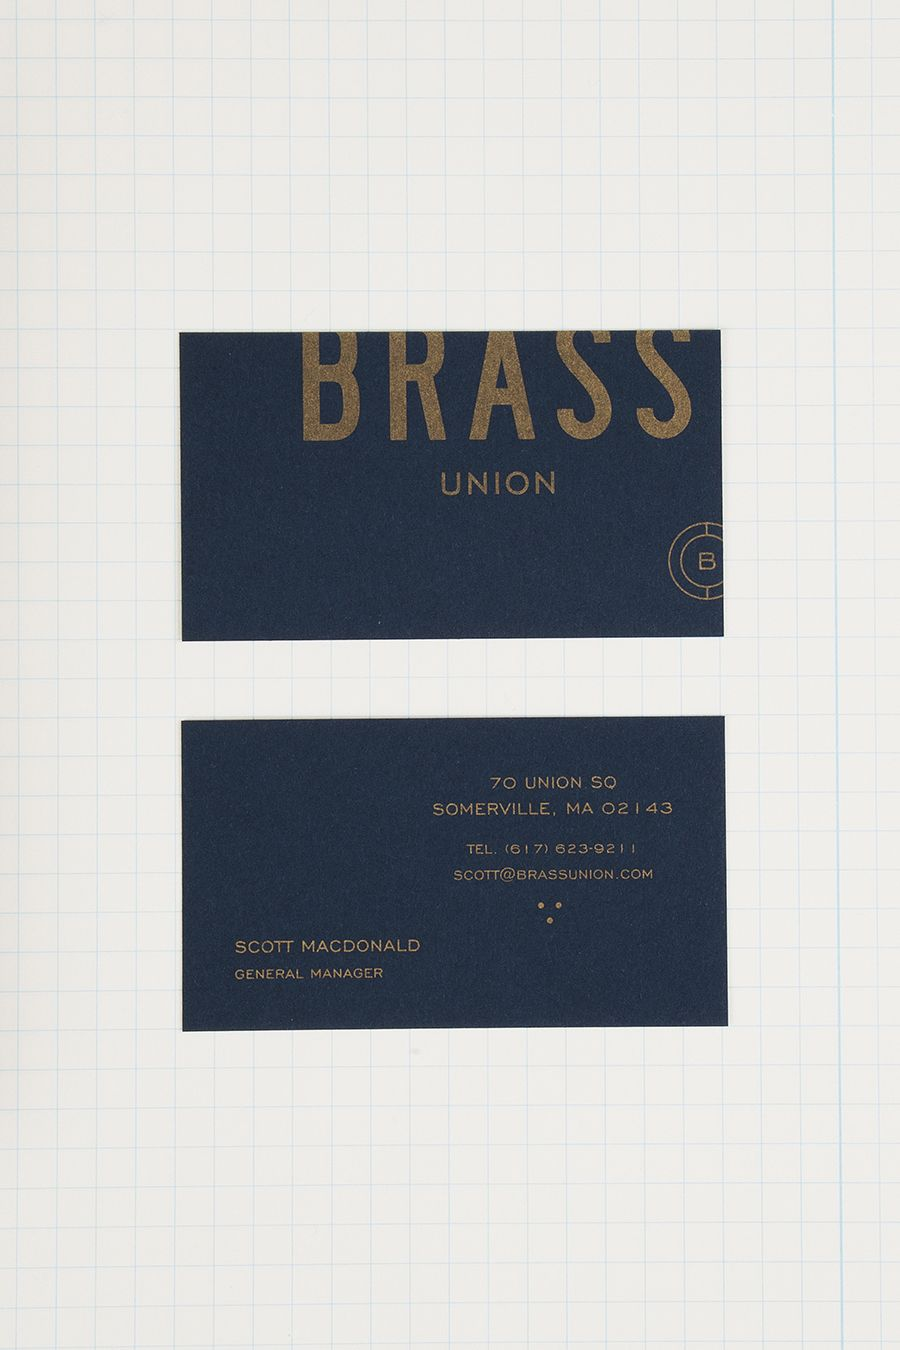 New Brand Identity for Brass Union by Oat — BP&O | Business cards ...